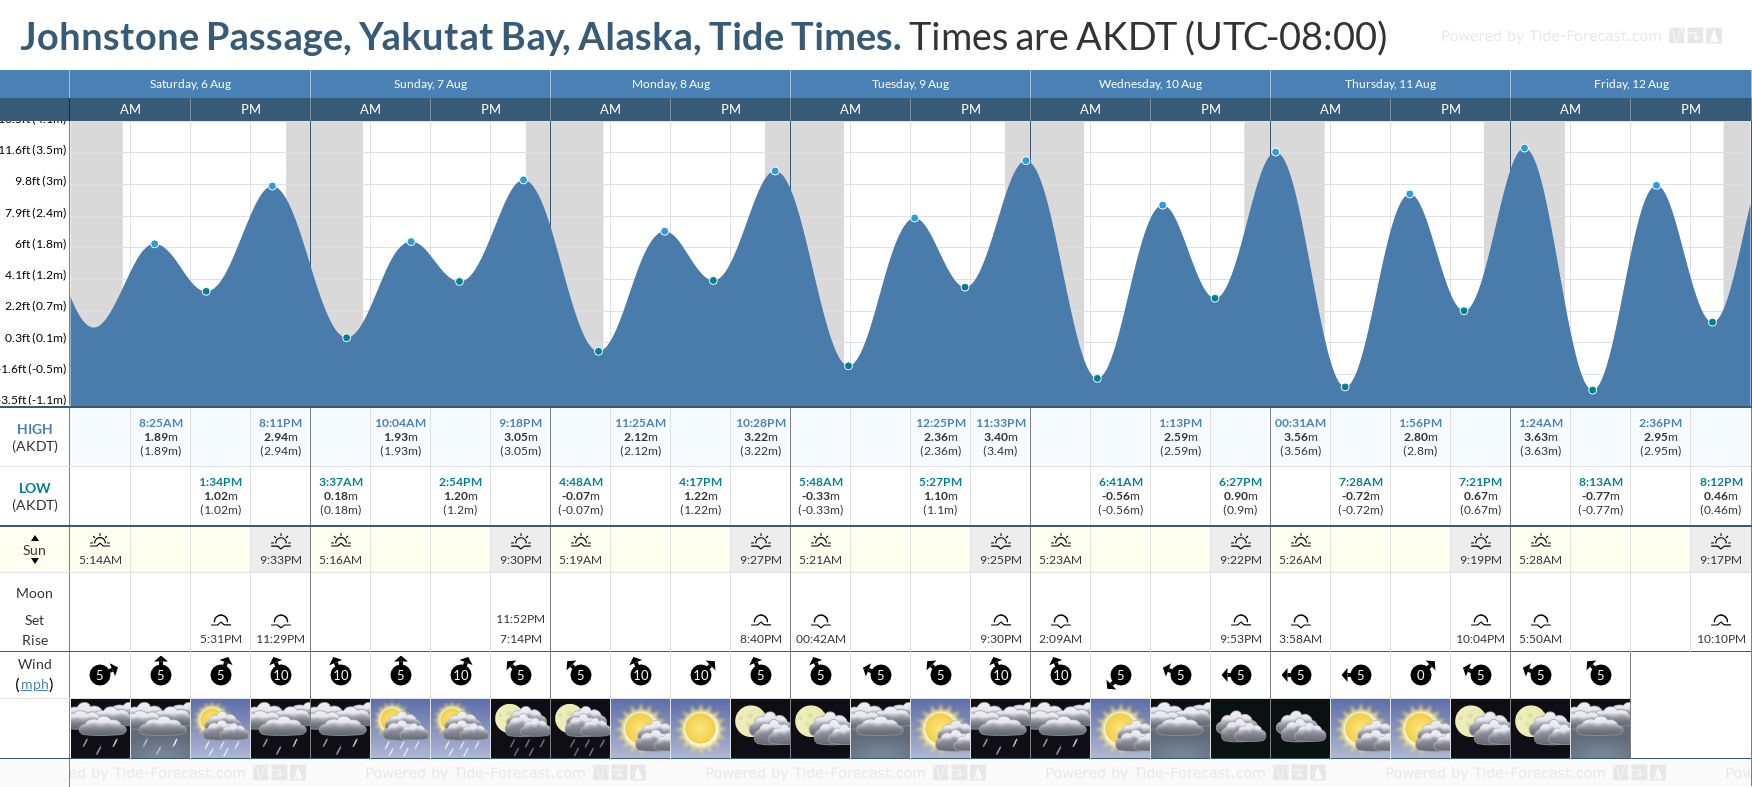 Johnstone Passage, Yakutat Bay, Alaska Tide Chart including high and low tide tide times for the next 7 days